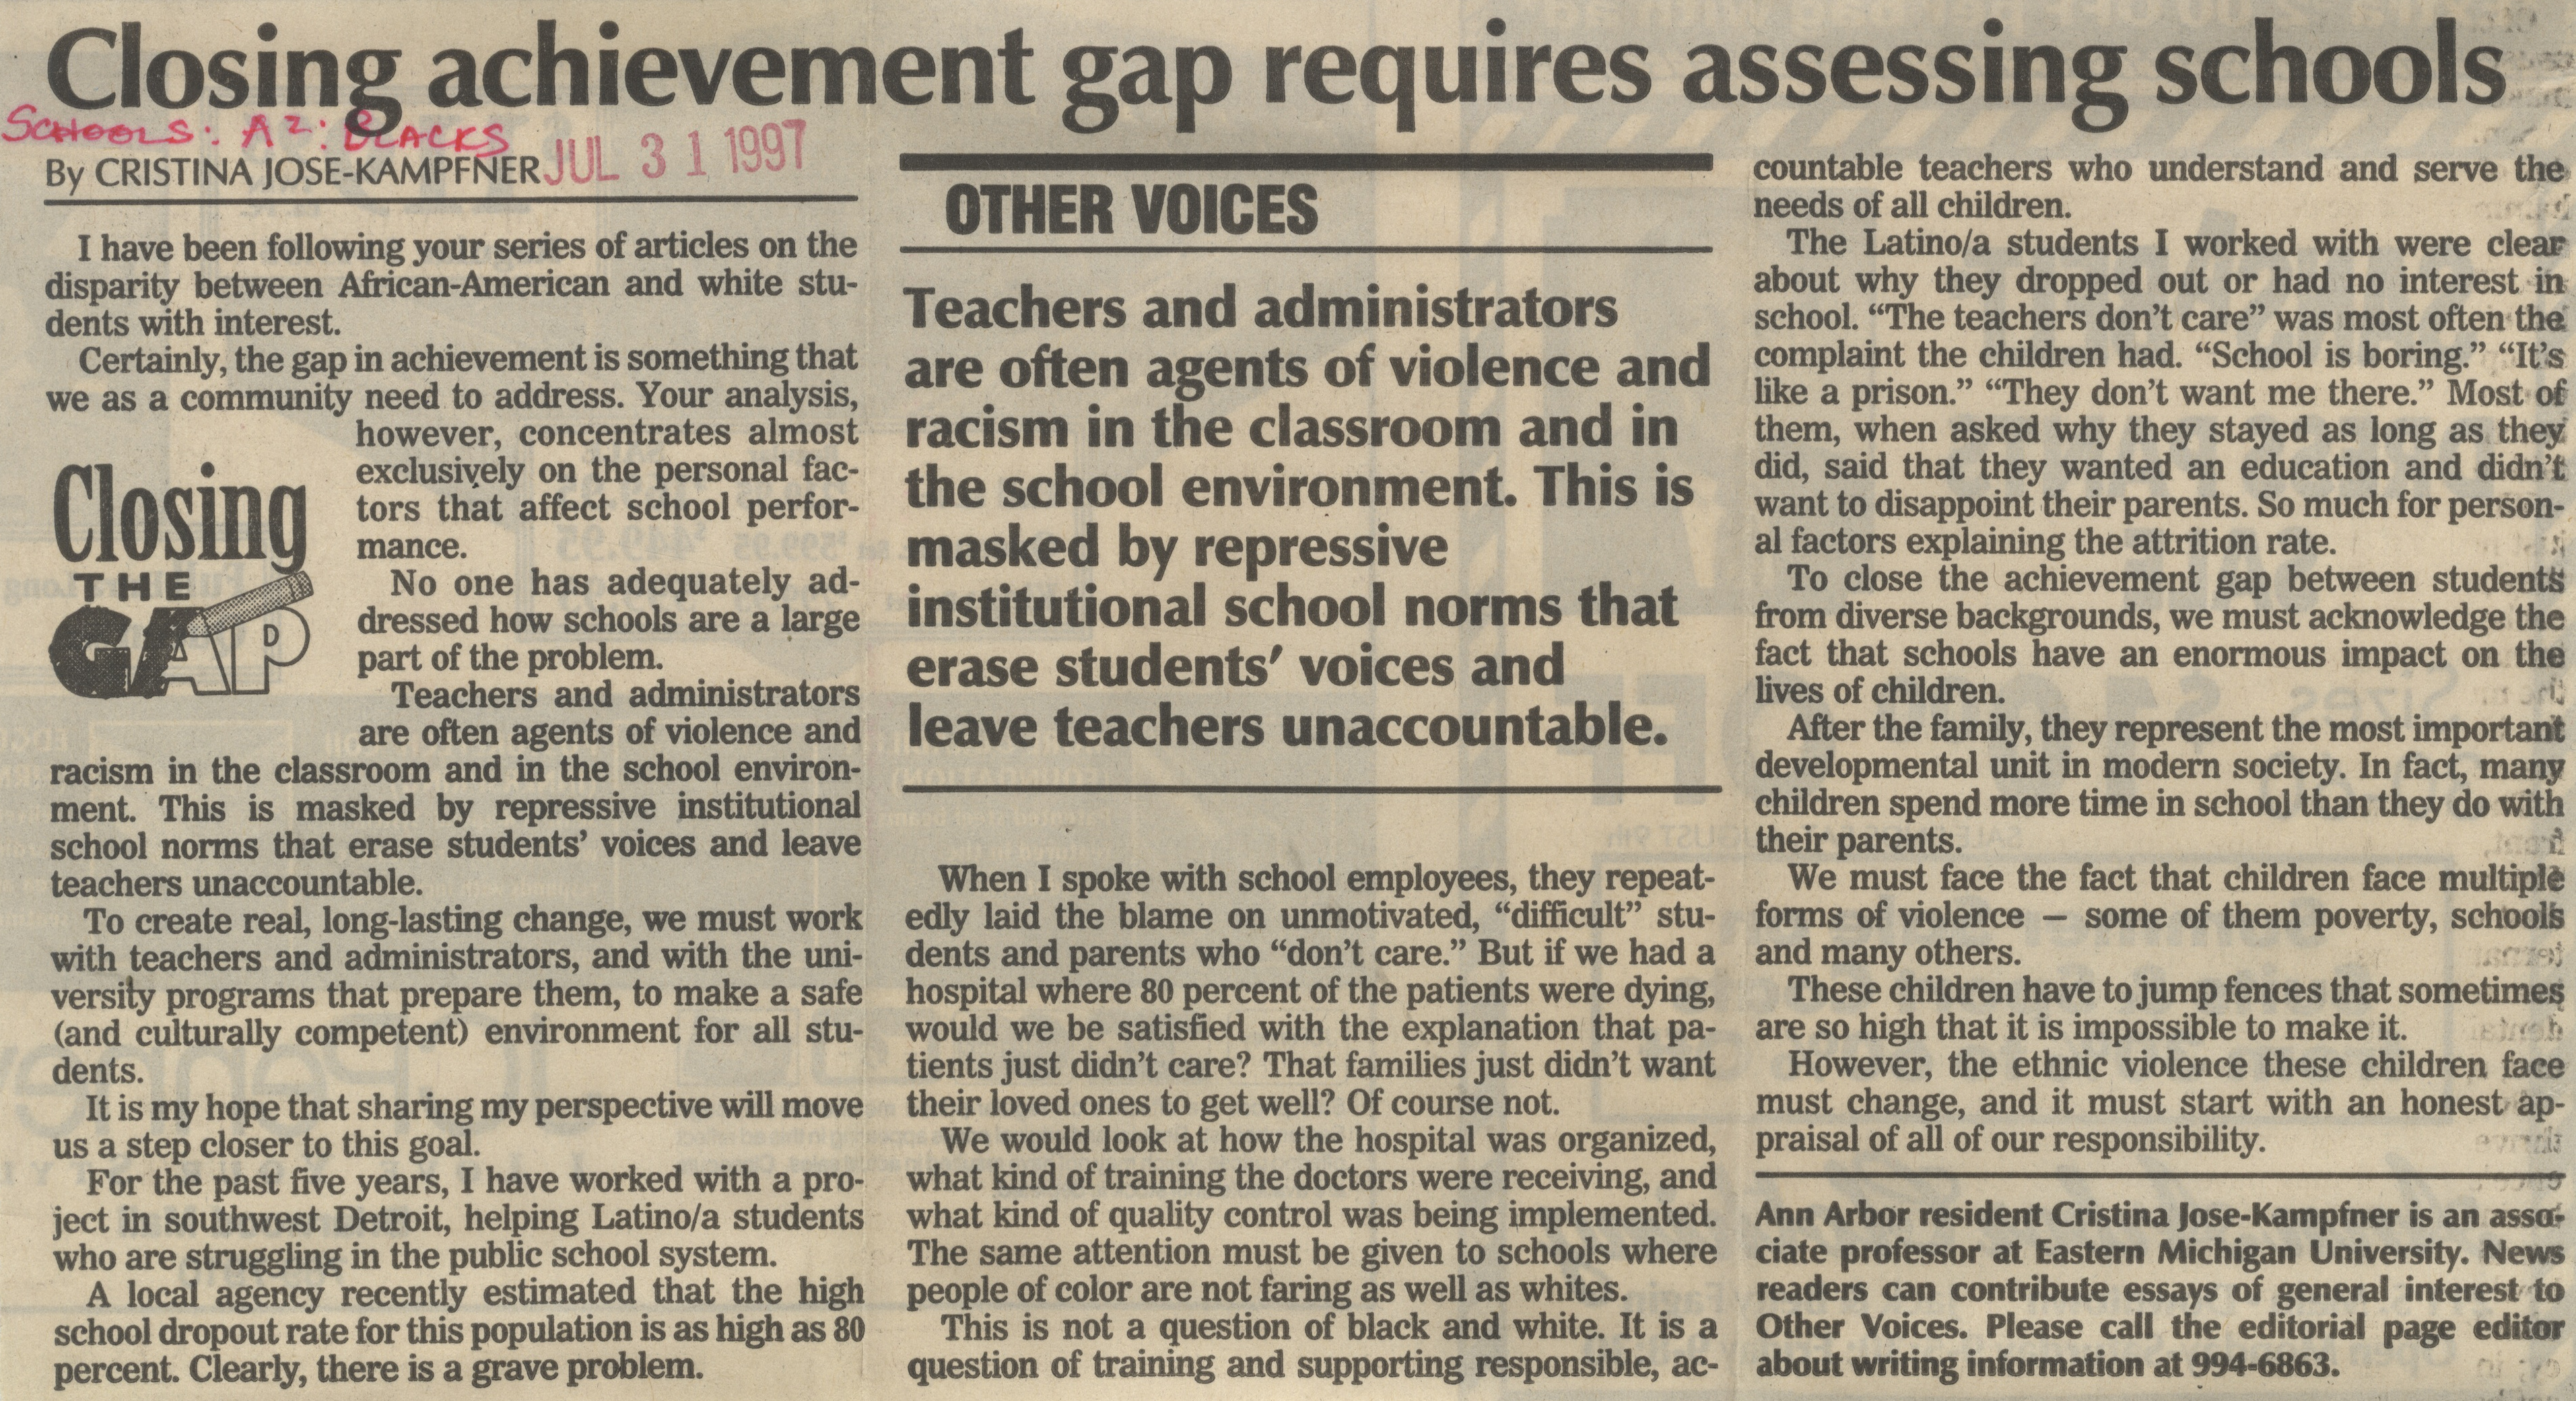 Closing Achievement Gap Requires Assessing Schools image